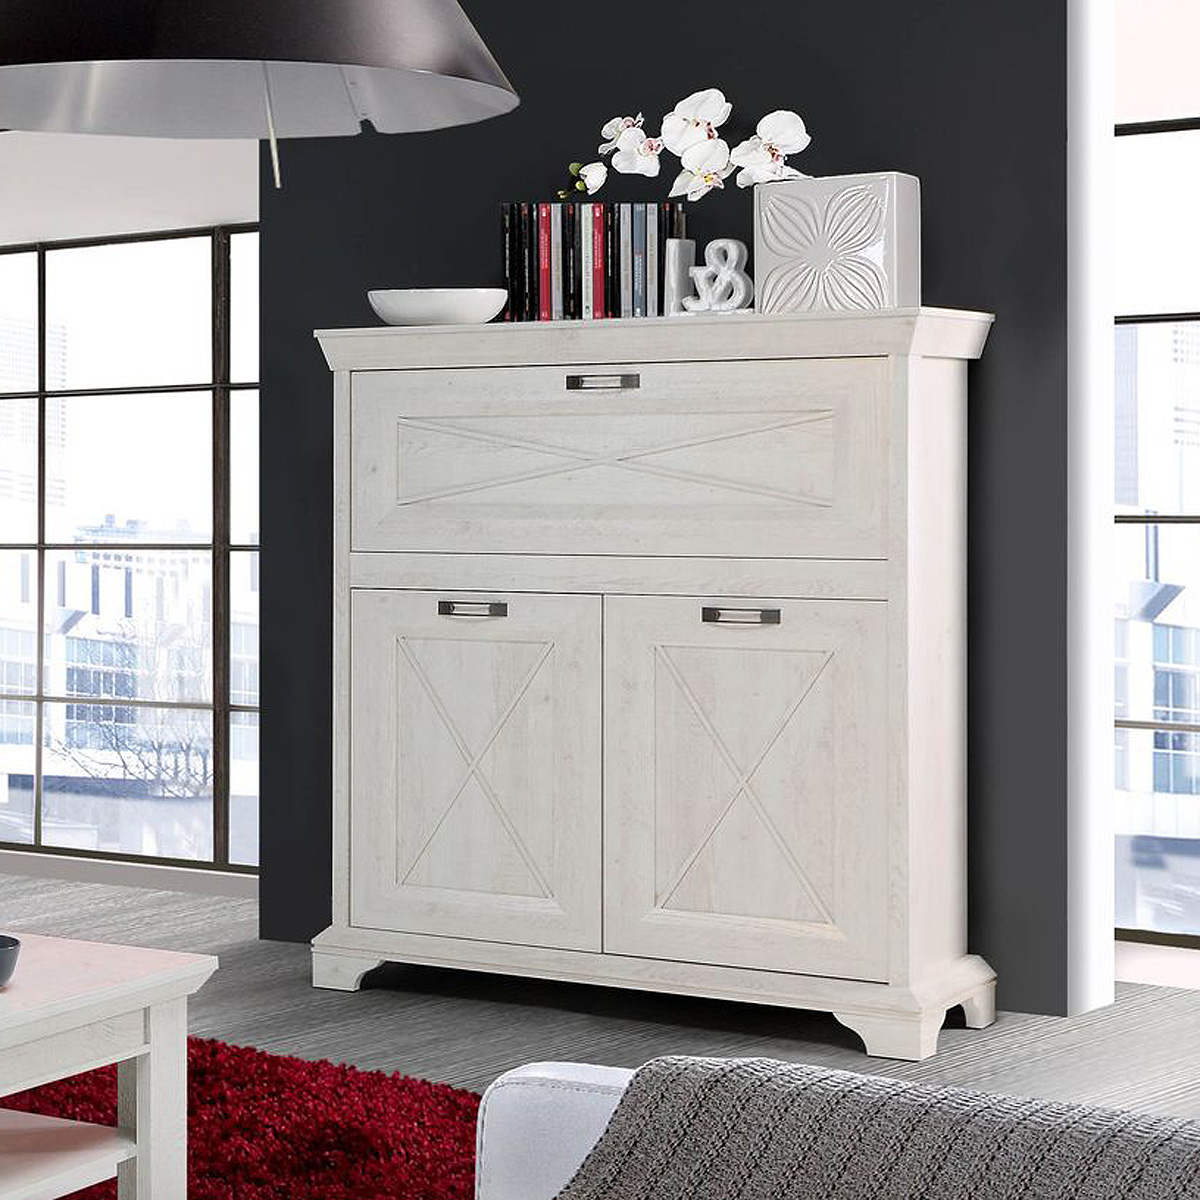 barkommode kashmir highboard schrank stauraumelement in pinie wei ebay. Black Bedroom Furniture Sets. Home Design Ideas